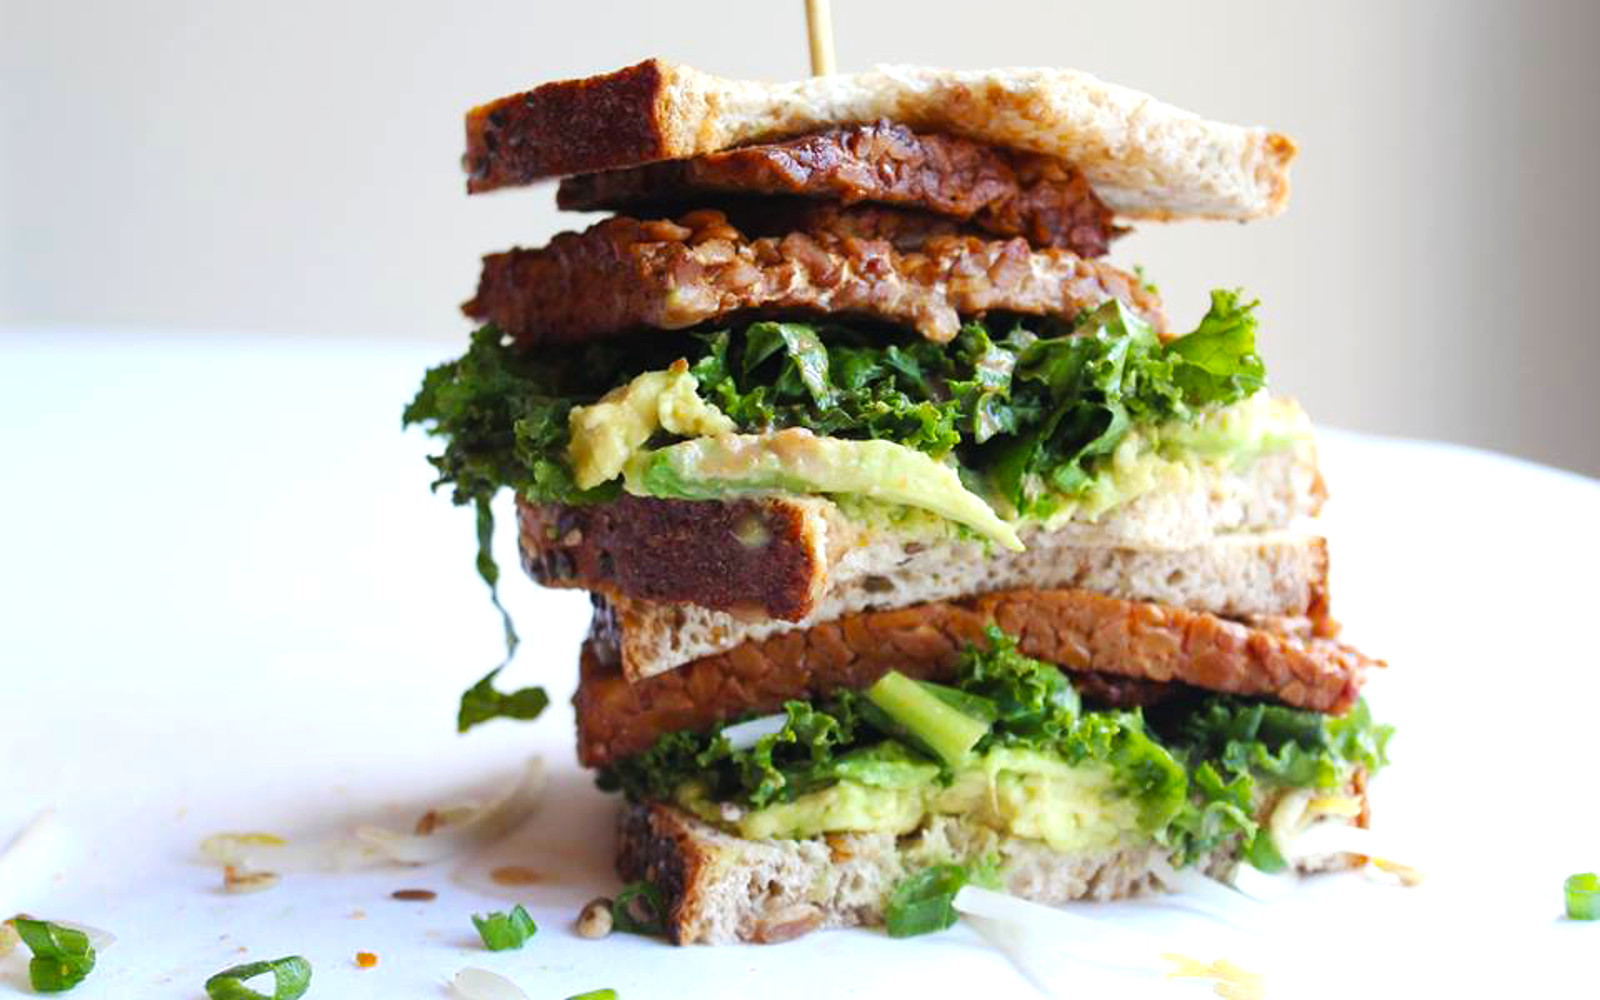 Korean BBQ Tempeh Sanwich With Kale Slaw